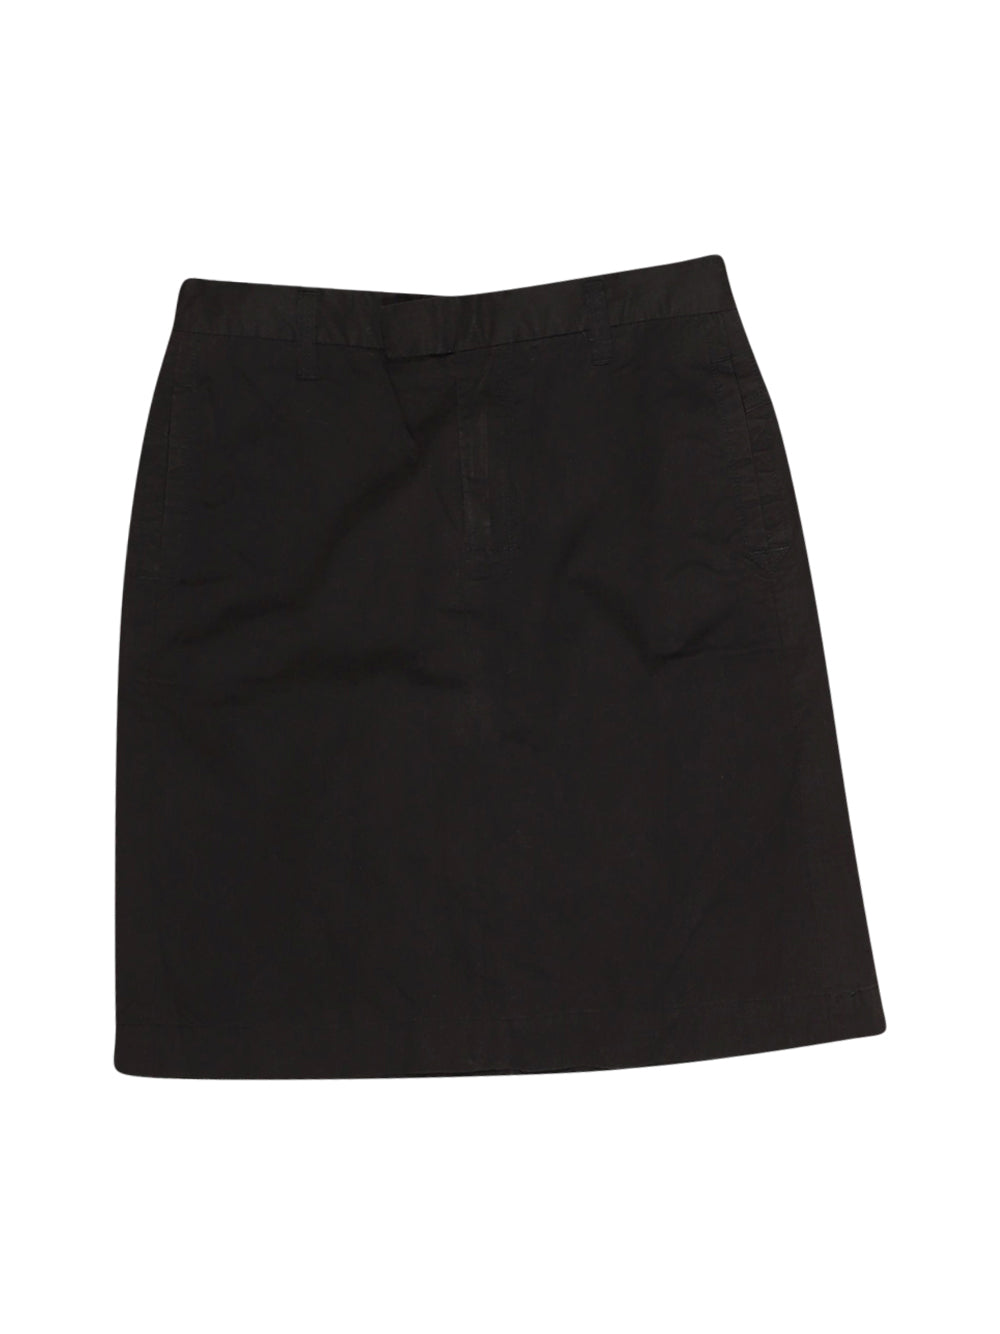 Front photo of Preloved Diesel Black Woman's skirt - size 8/S